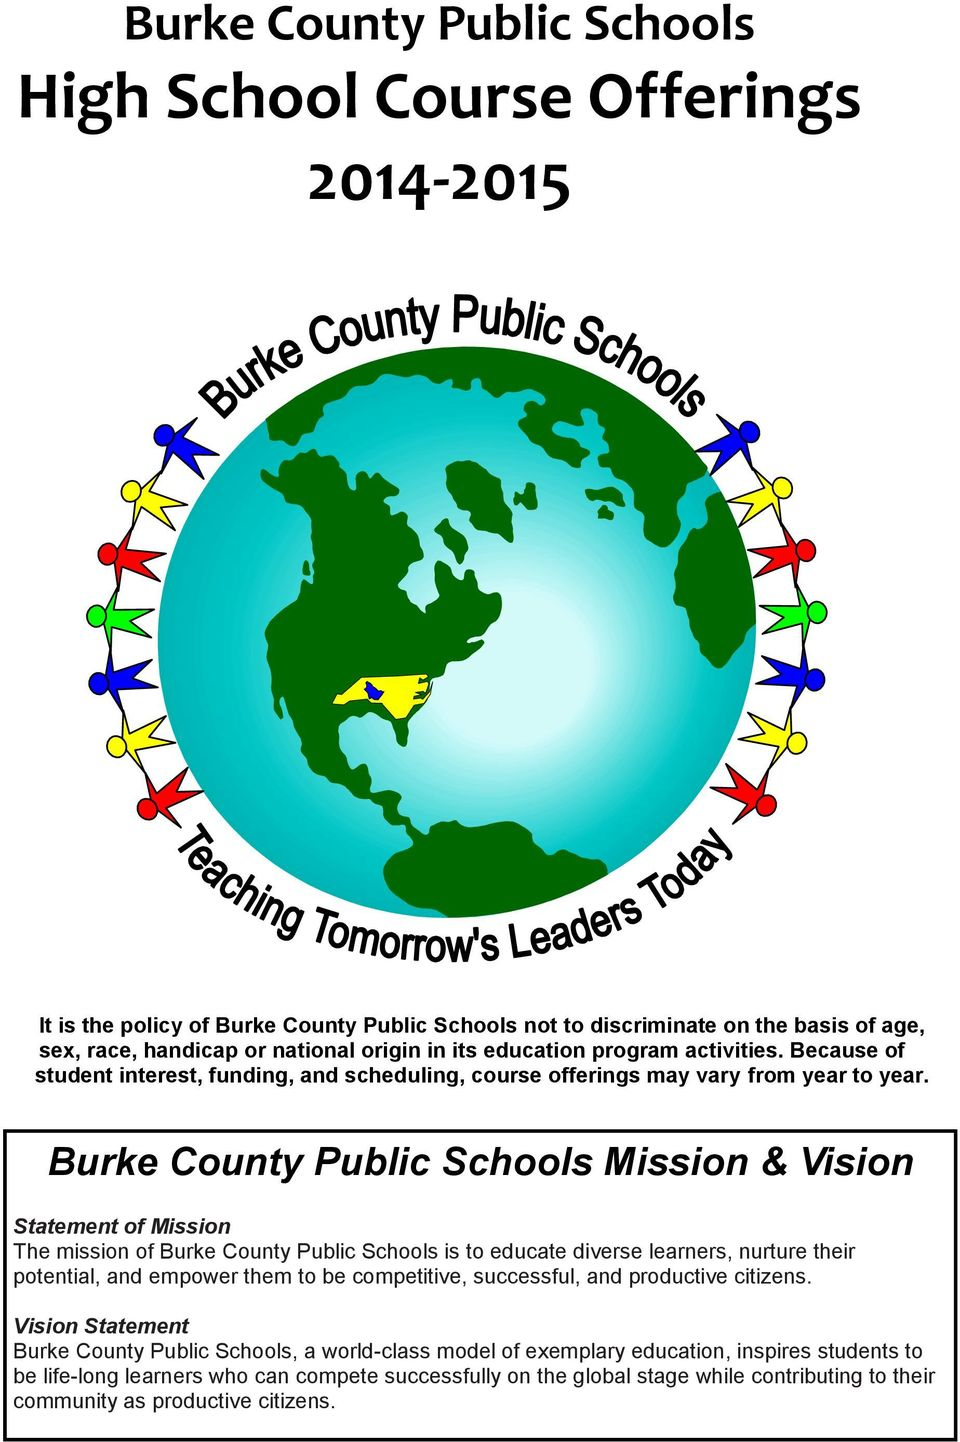 Burke County Public Schools Mission & Vision Statement of Mission The mission of Burke County Public Schools is to educate diverse learners, nurture their potential, and empower them to be